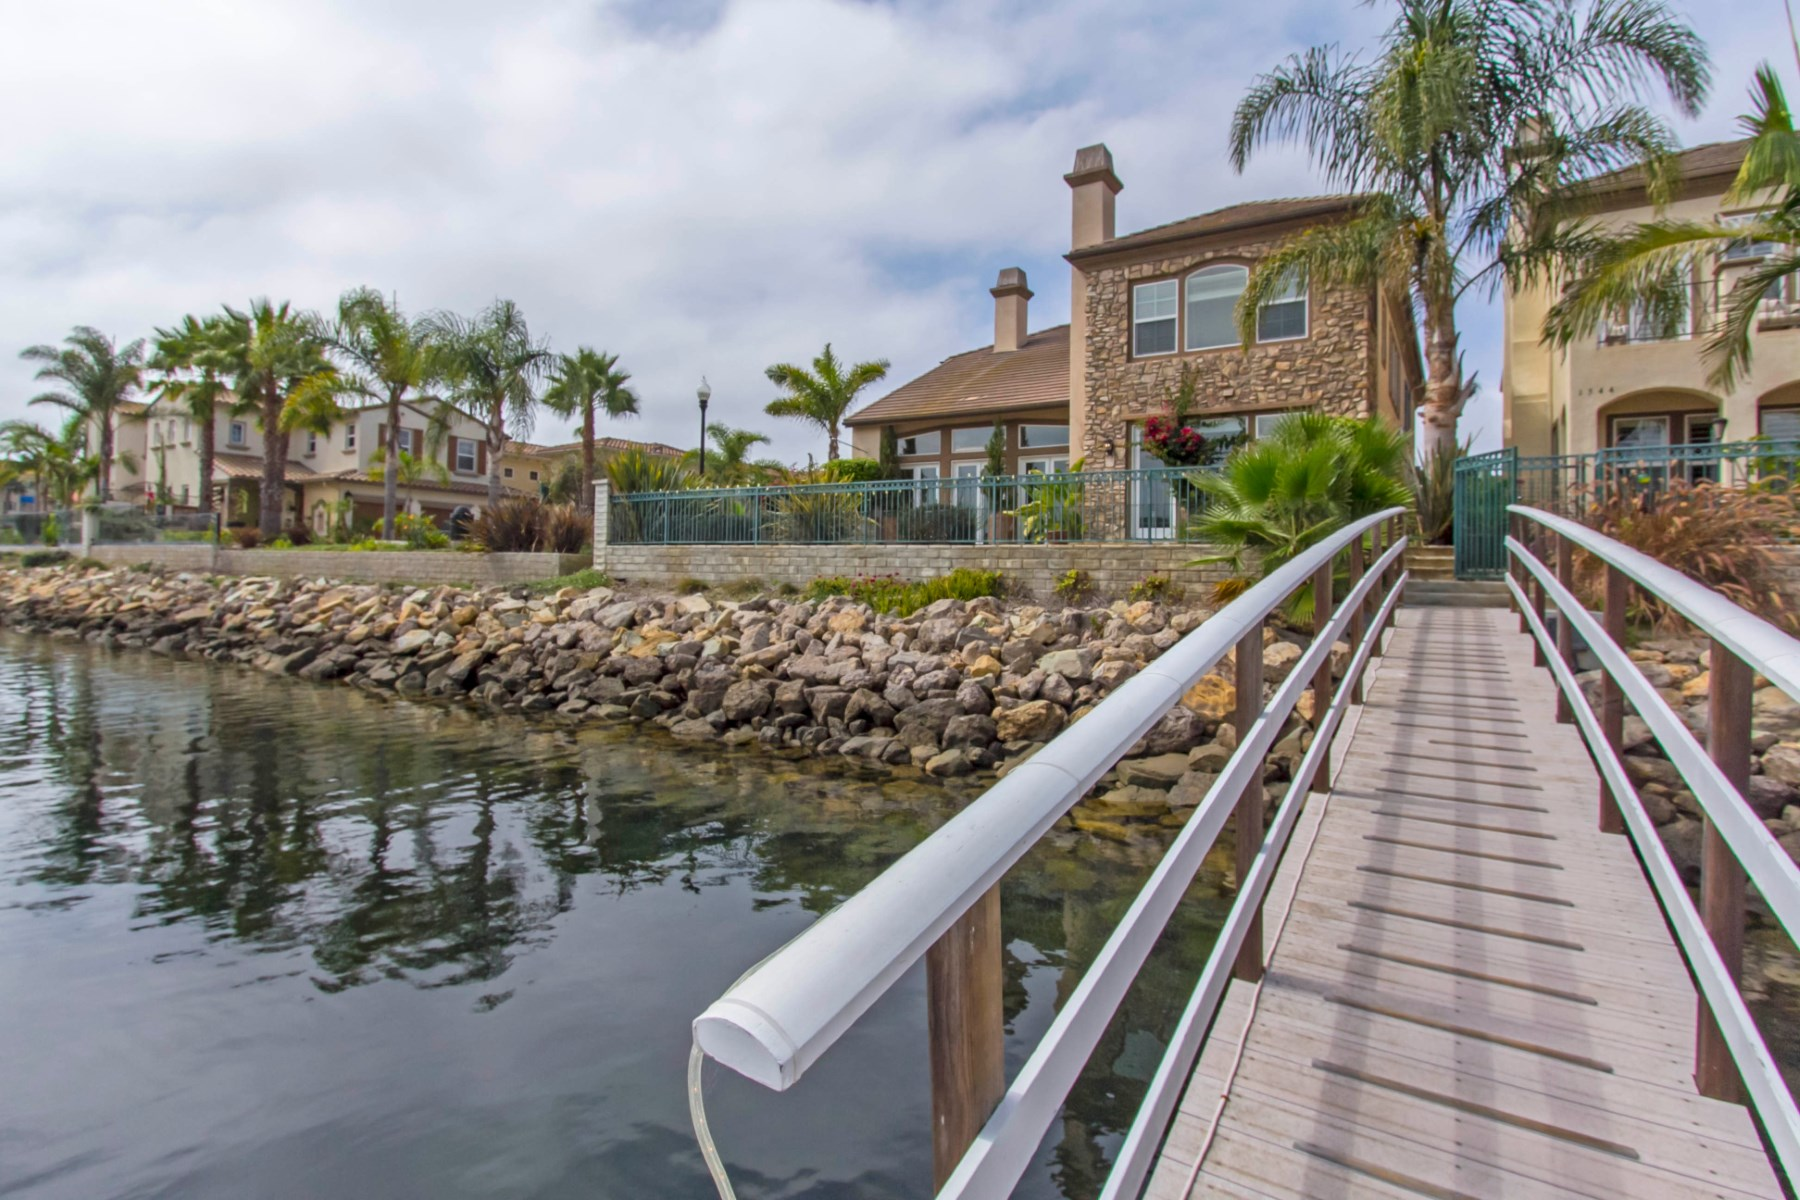 Property For Sale at Westport - Channel Islands Marina